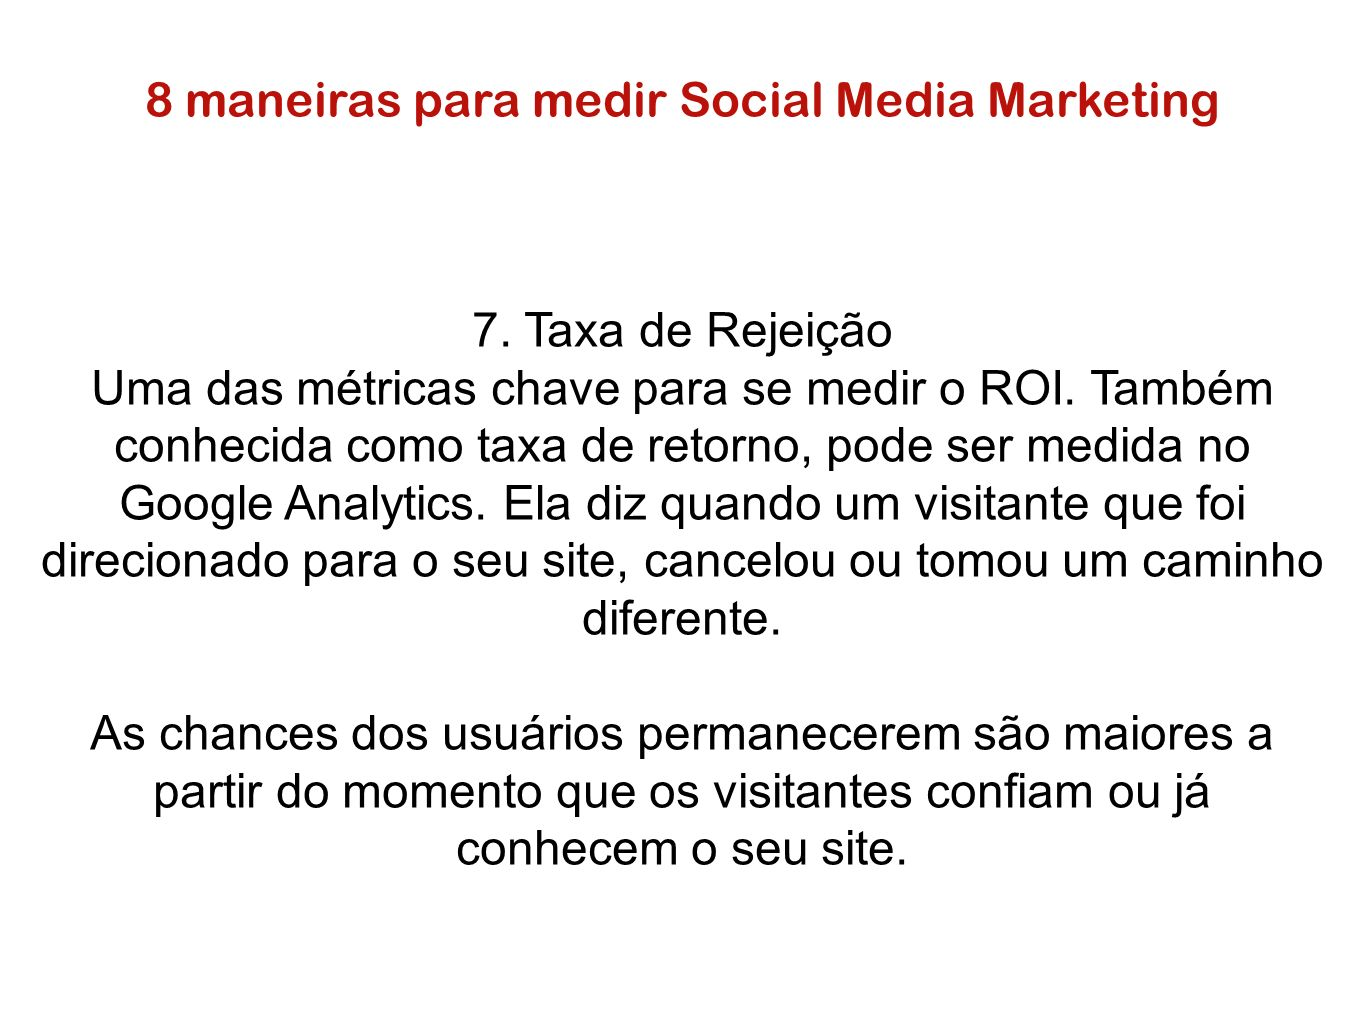 8 maneiras para medir Social Media Marketing